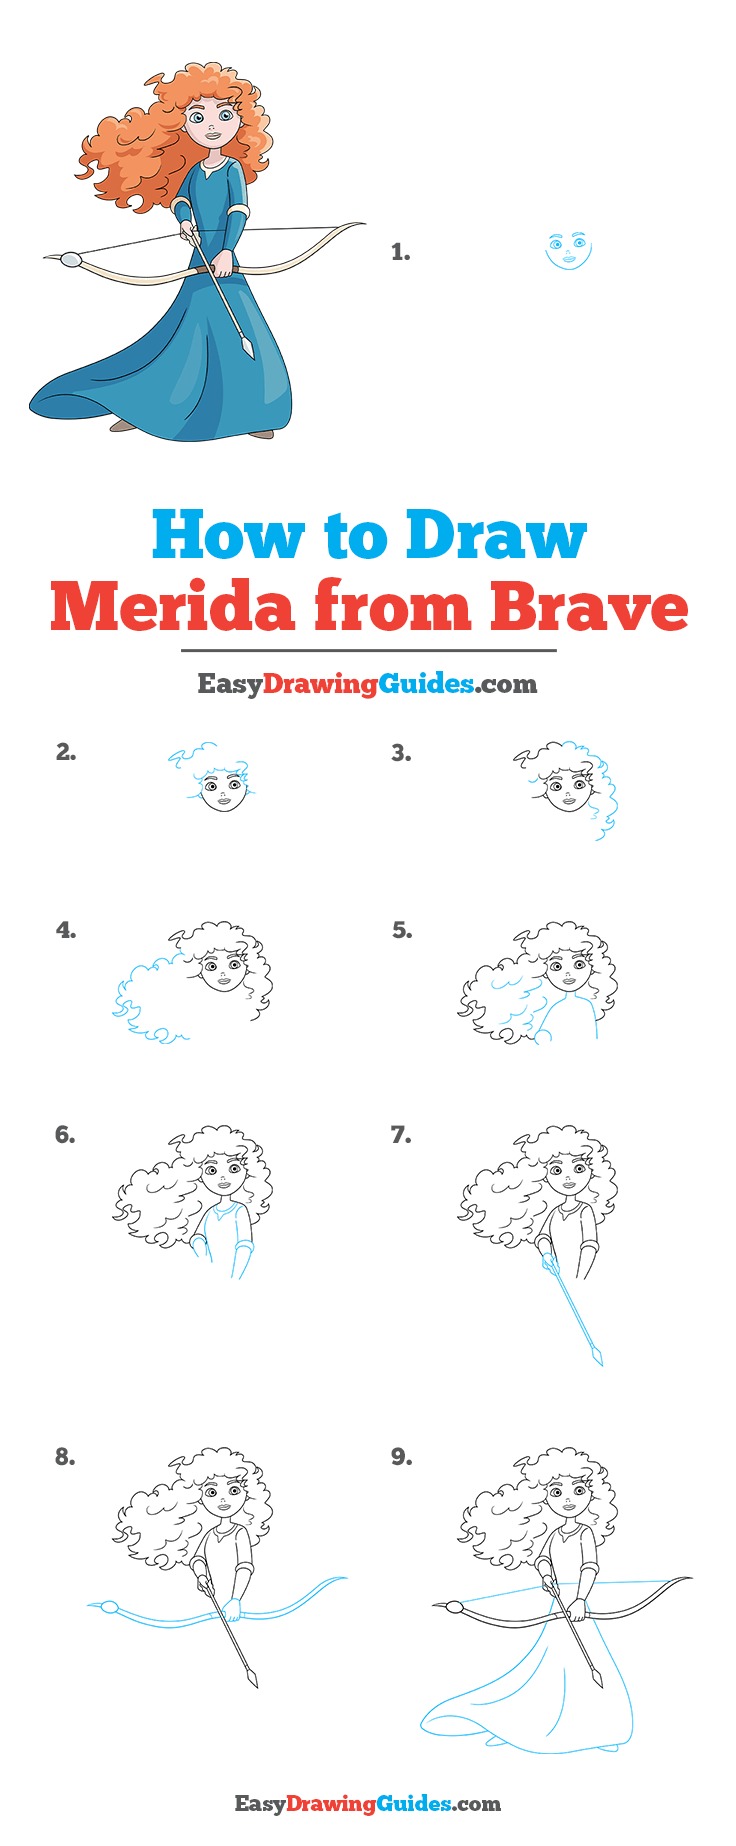 How to Draw Merida from Brave Step by Step Tutorial Image